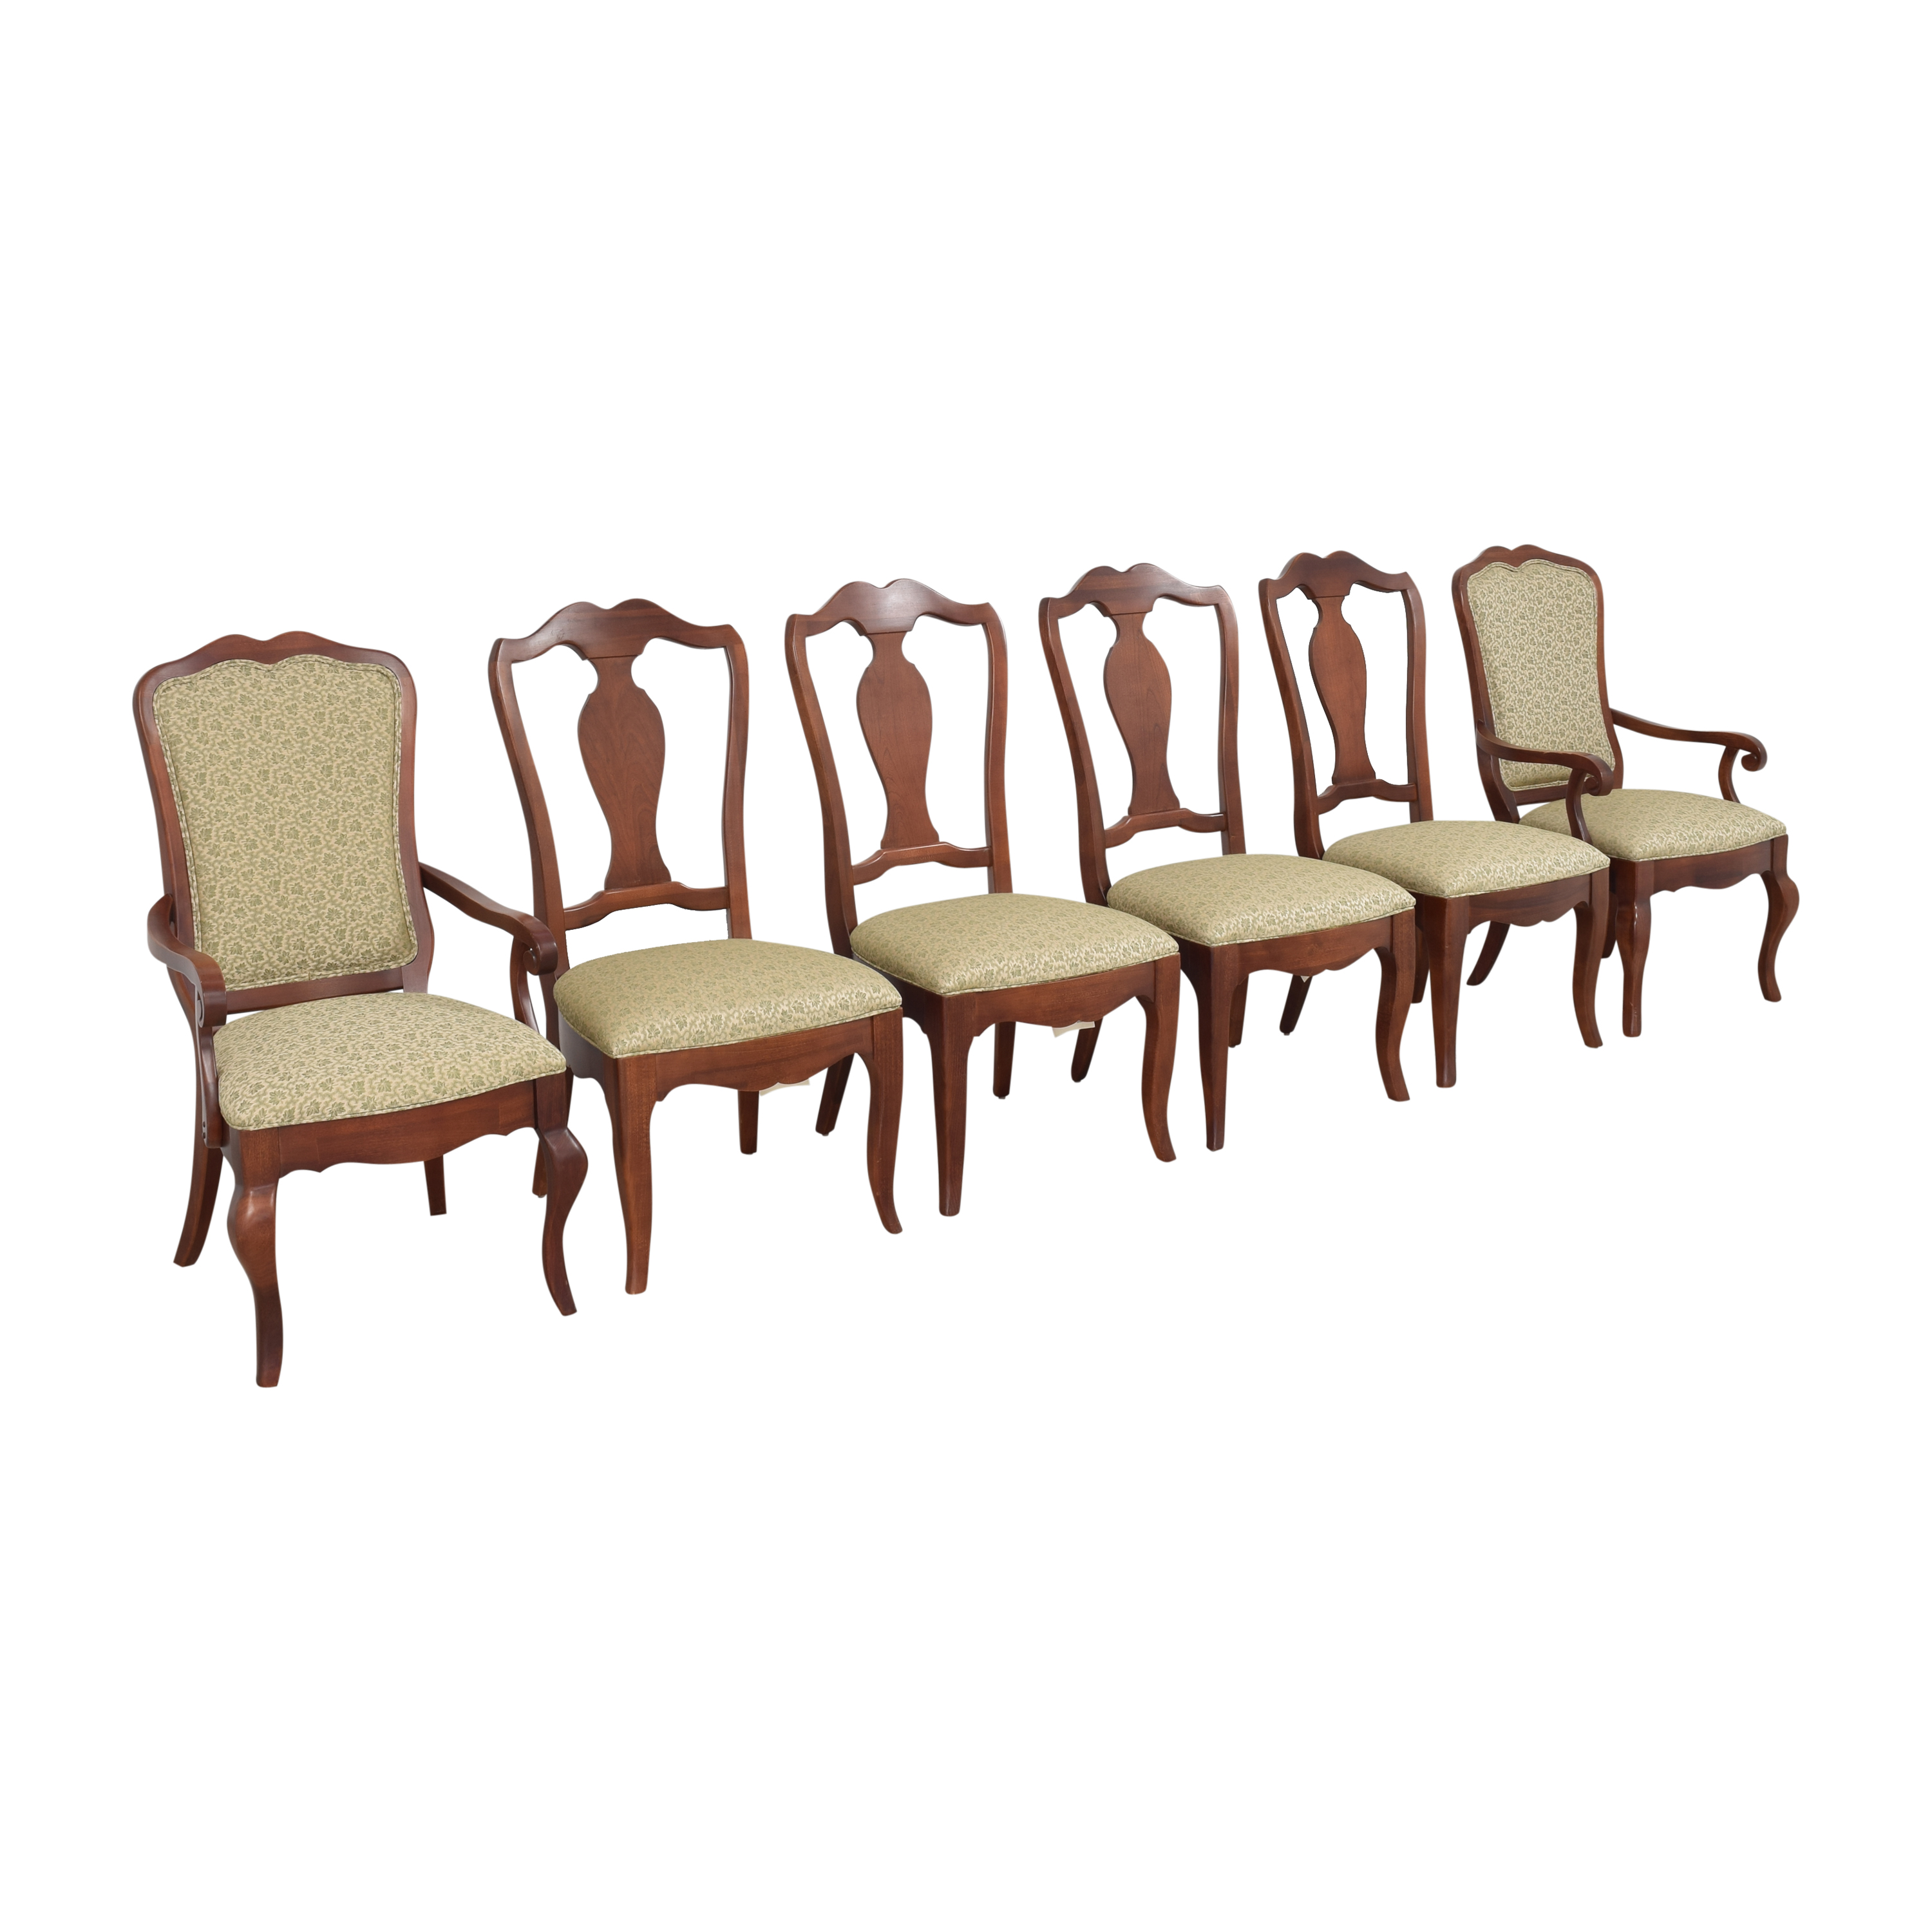 Thomasville Thomasville Upholstered Dining Chairs